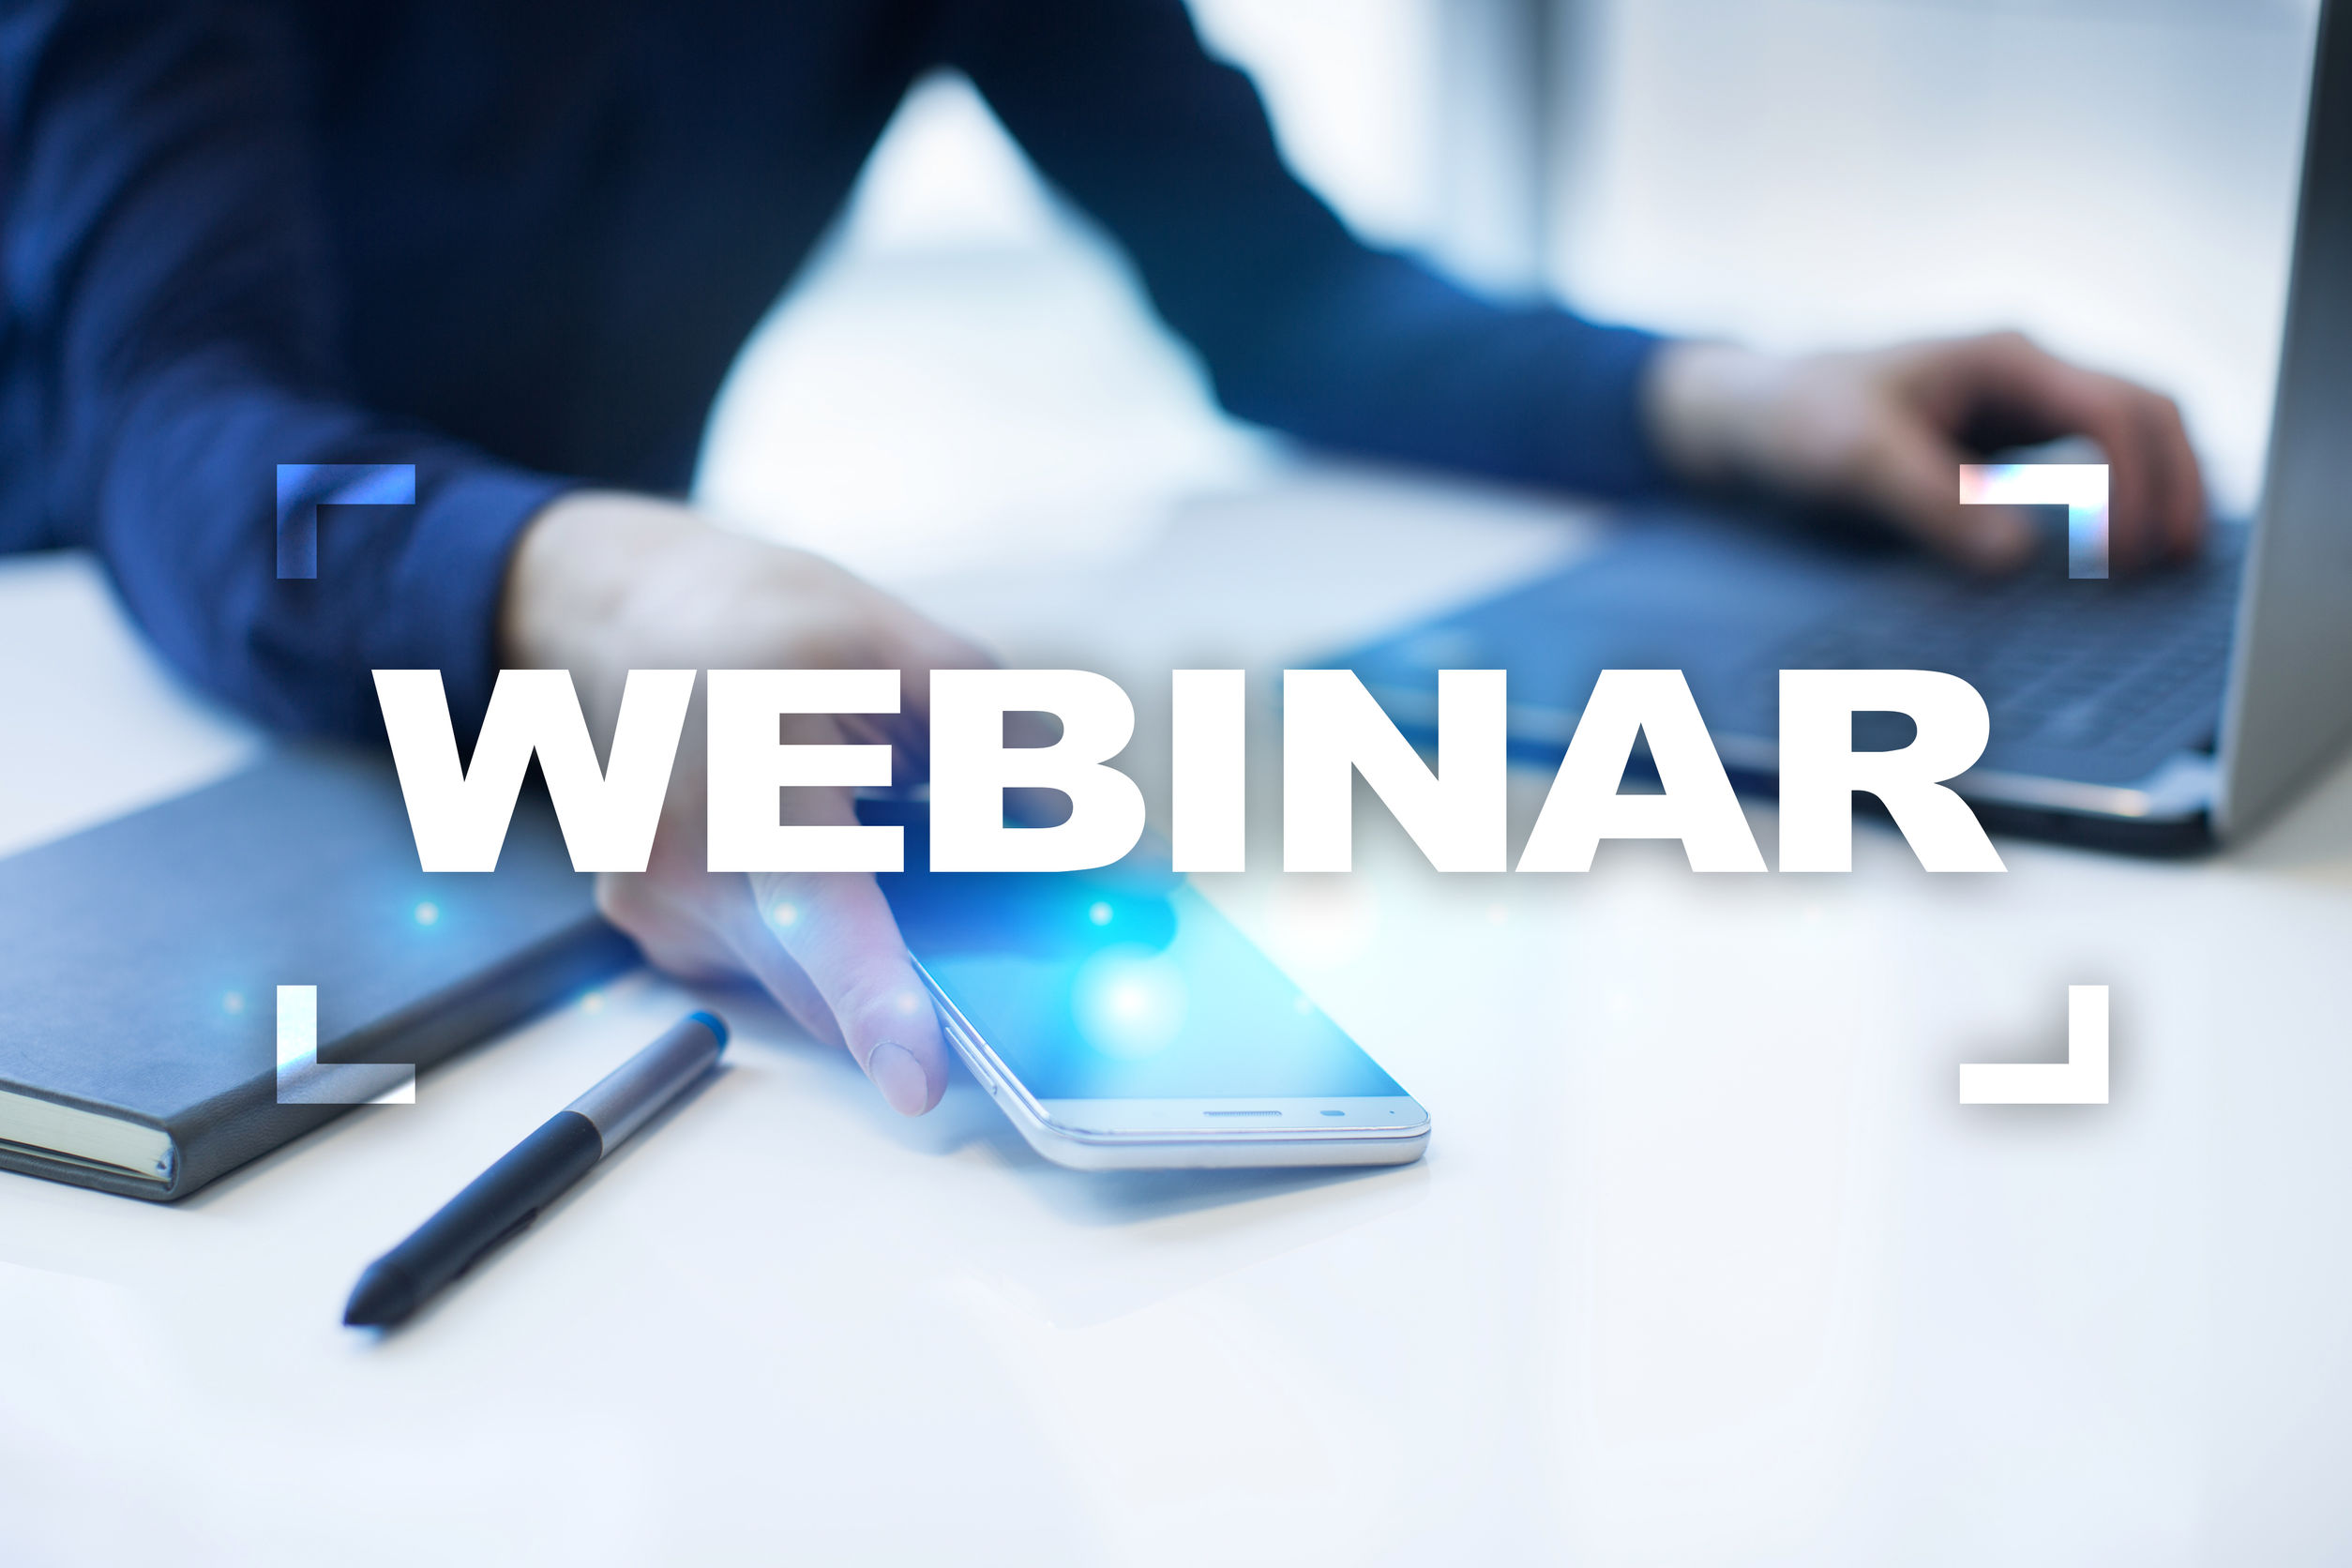 Explore aACE in Our May Webinars